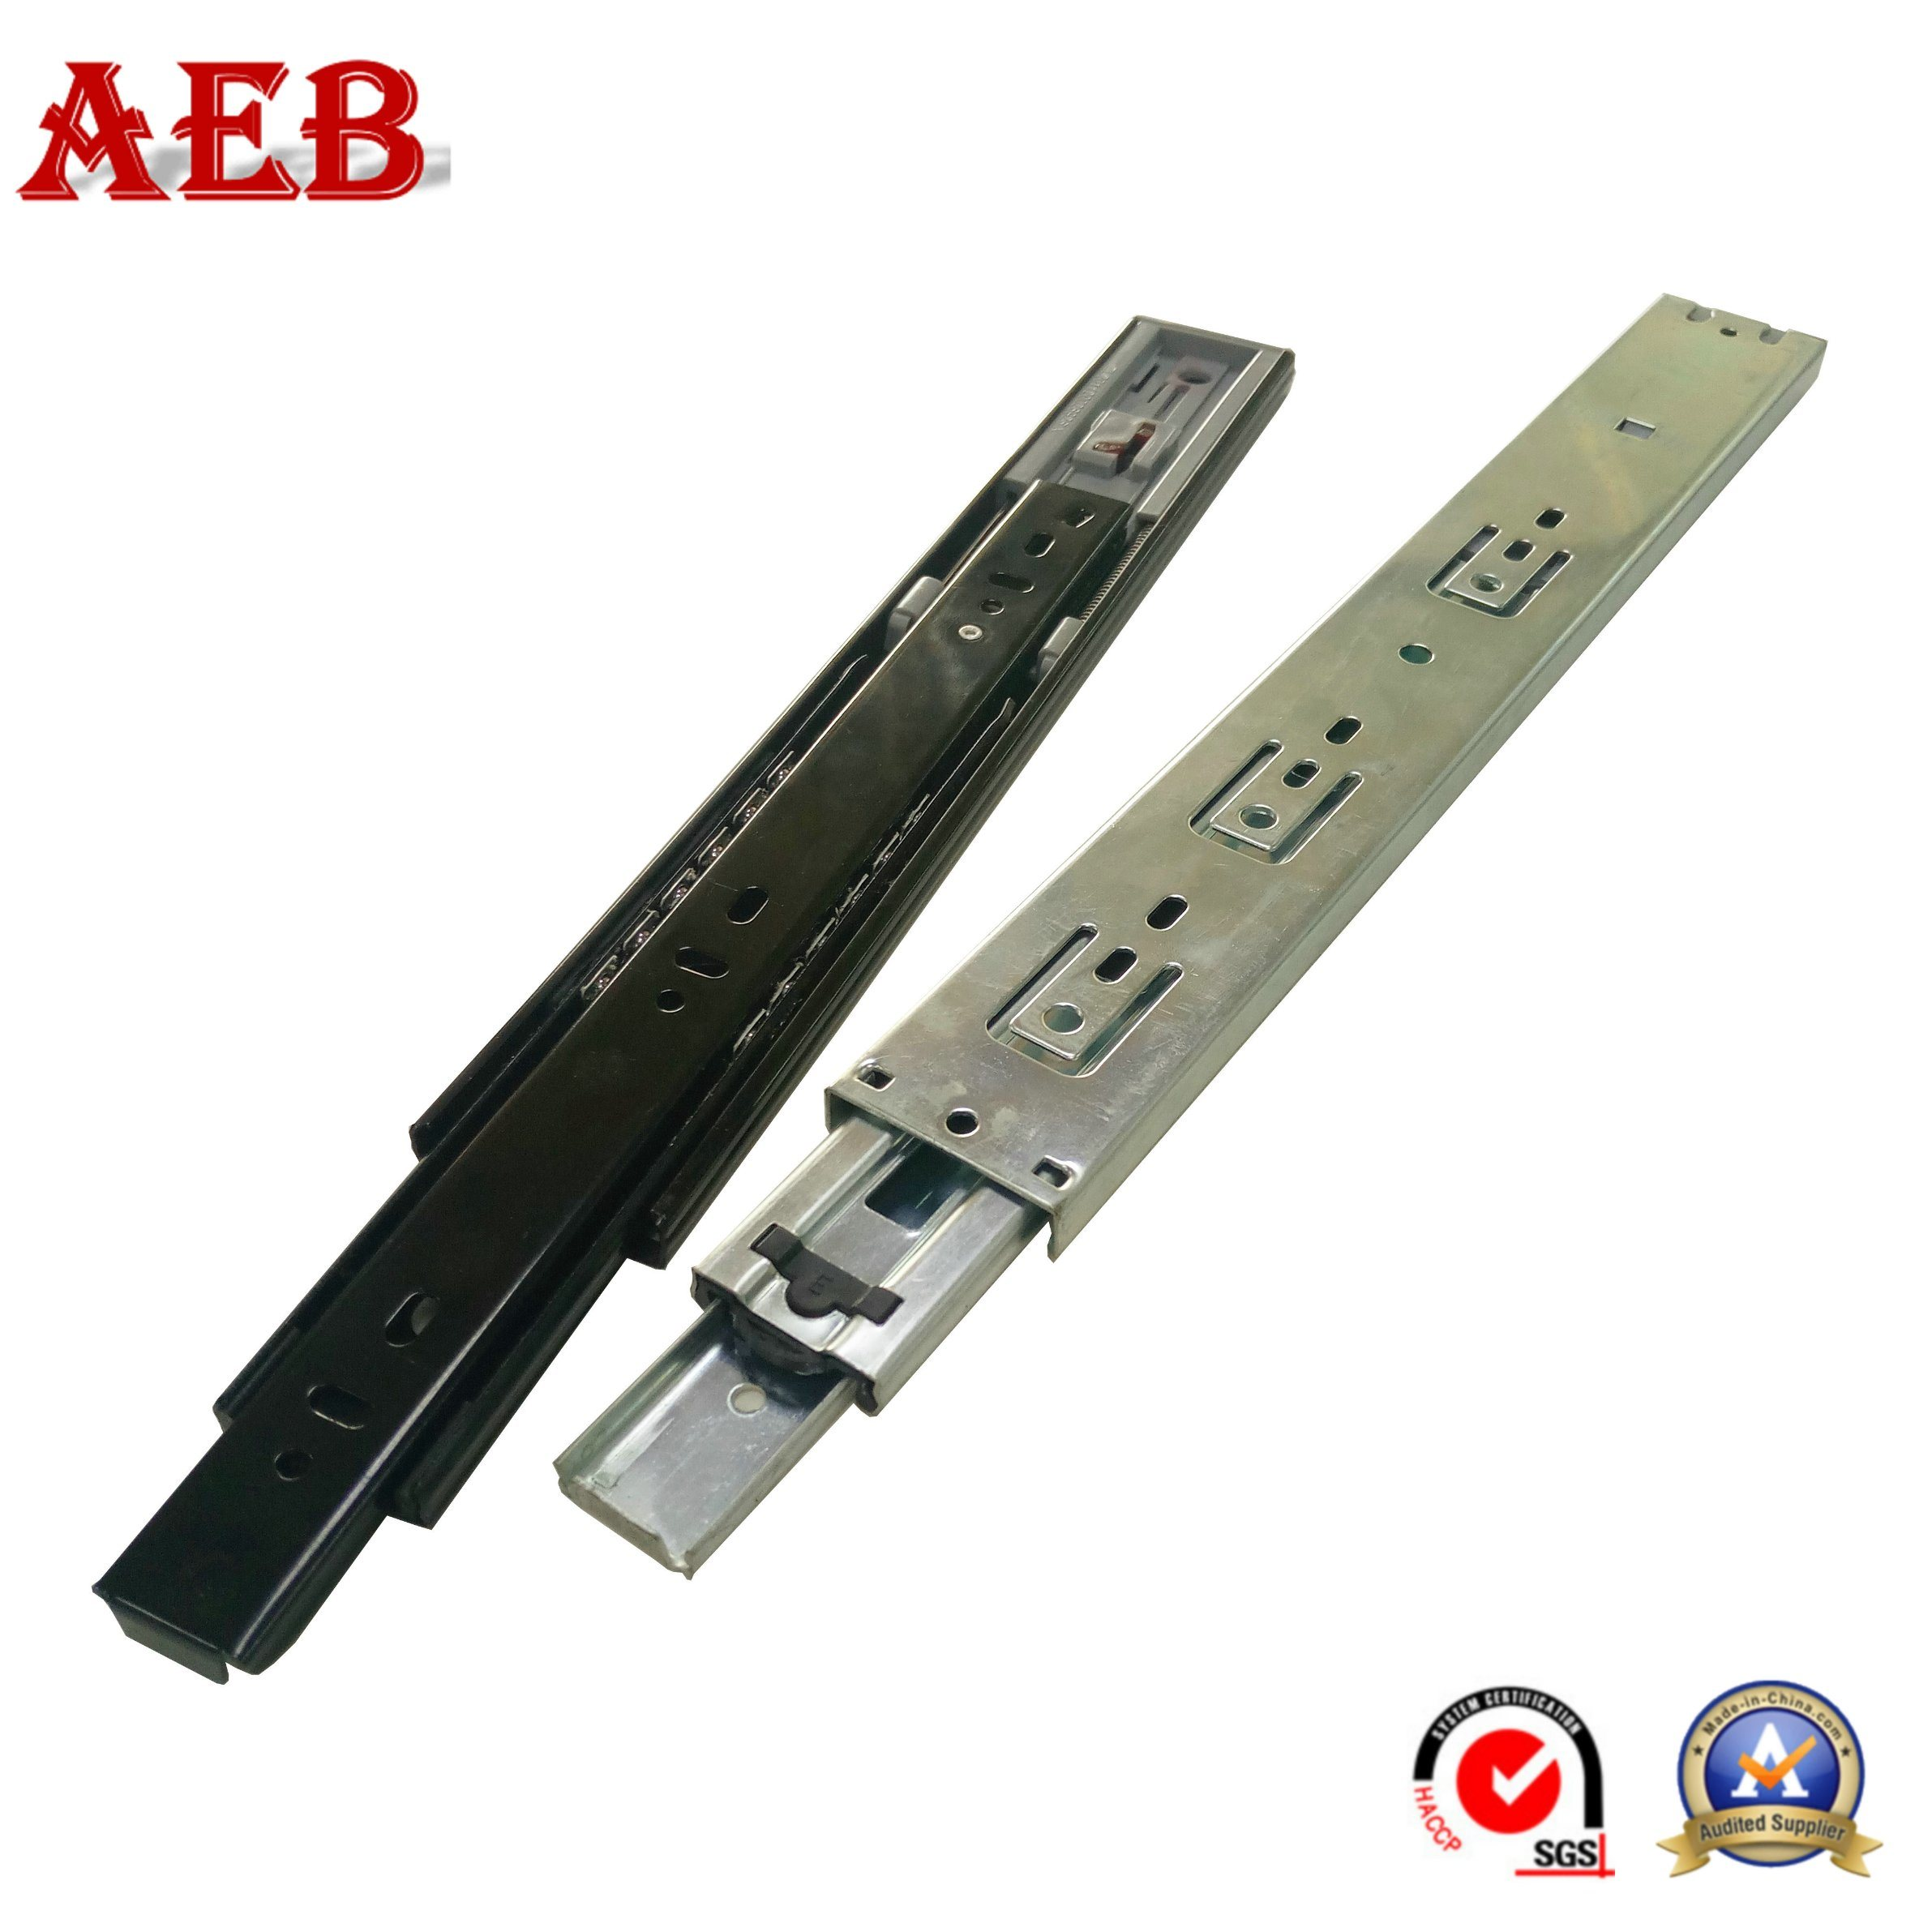 of bearing fold product lspjxyoseukc rails ball china industrial linear slides full slide extension drawer